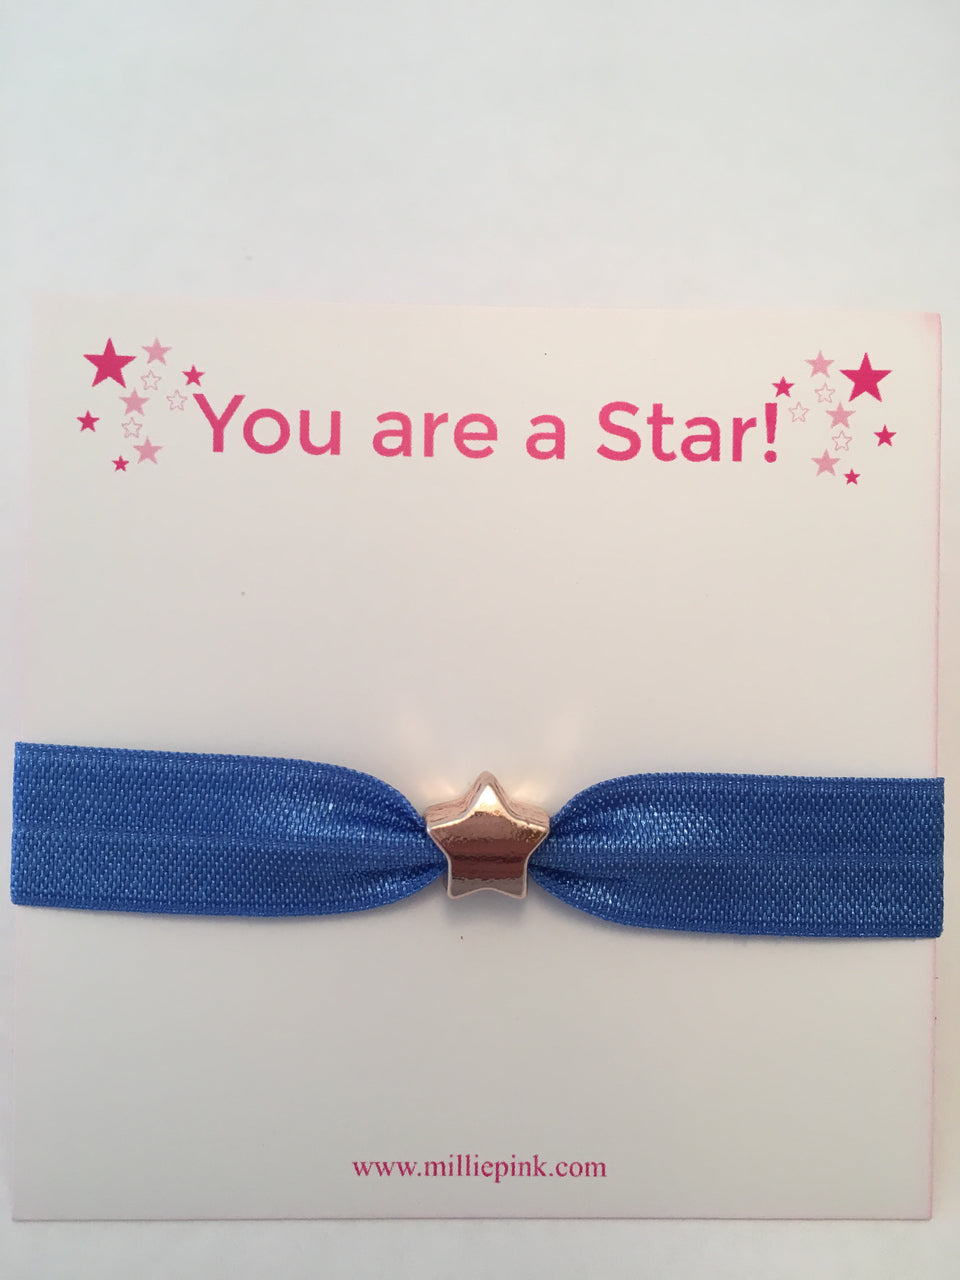 You are a star! Blue Star Hairband